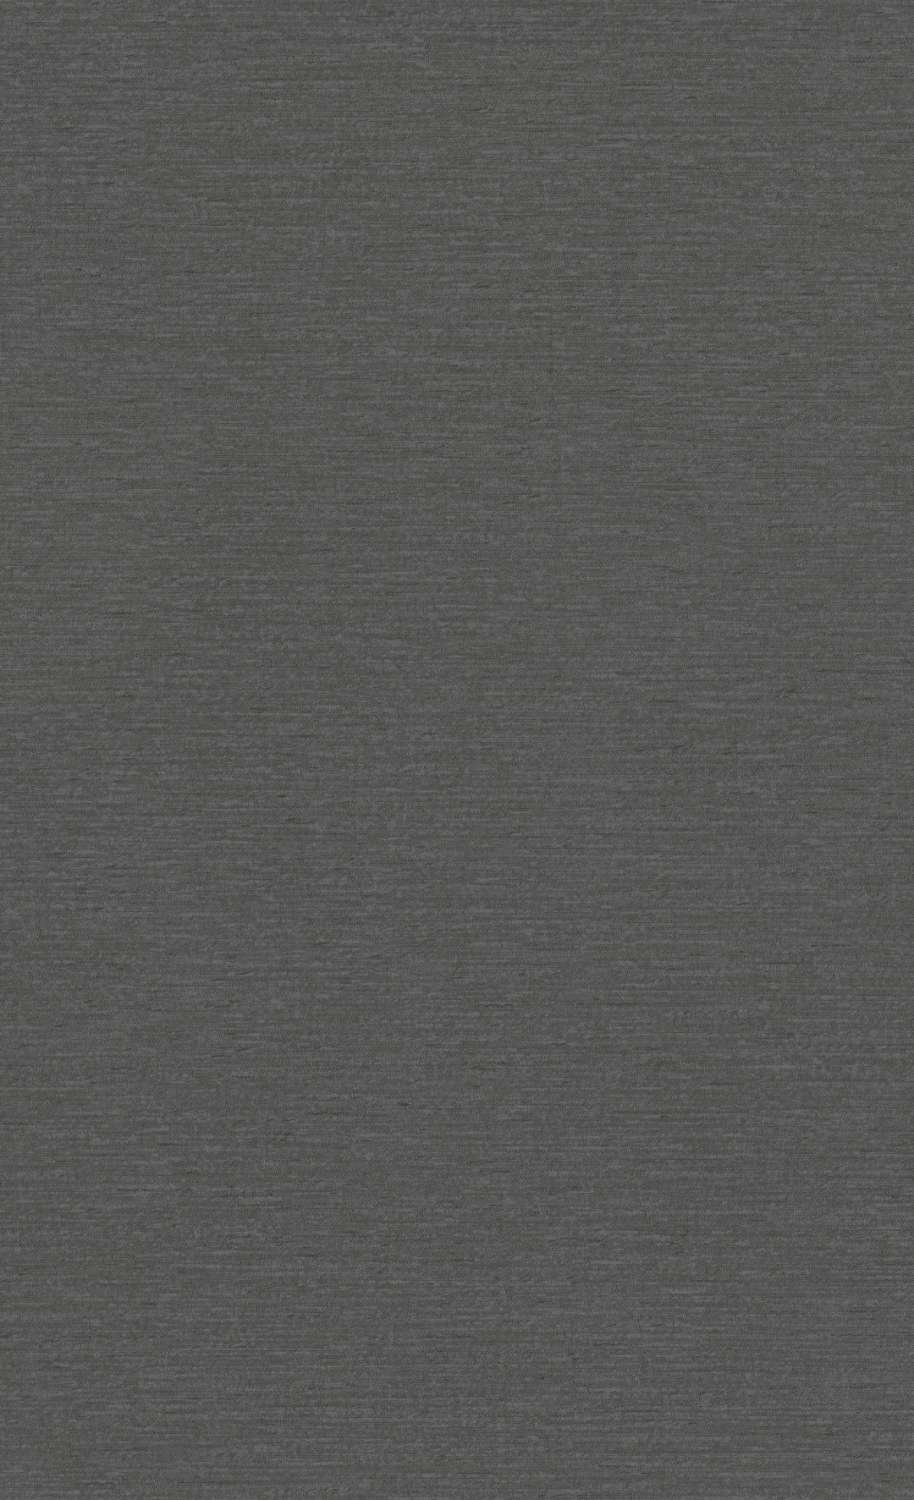 Modern Plain Textured Black Wallpaper C7212 | Commercial Wall-coverings, corporate, hospitality, non woven , modern, vinyl